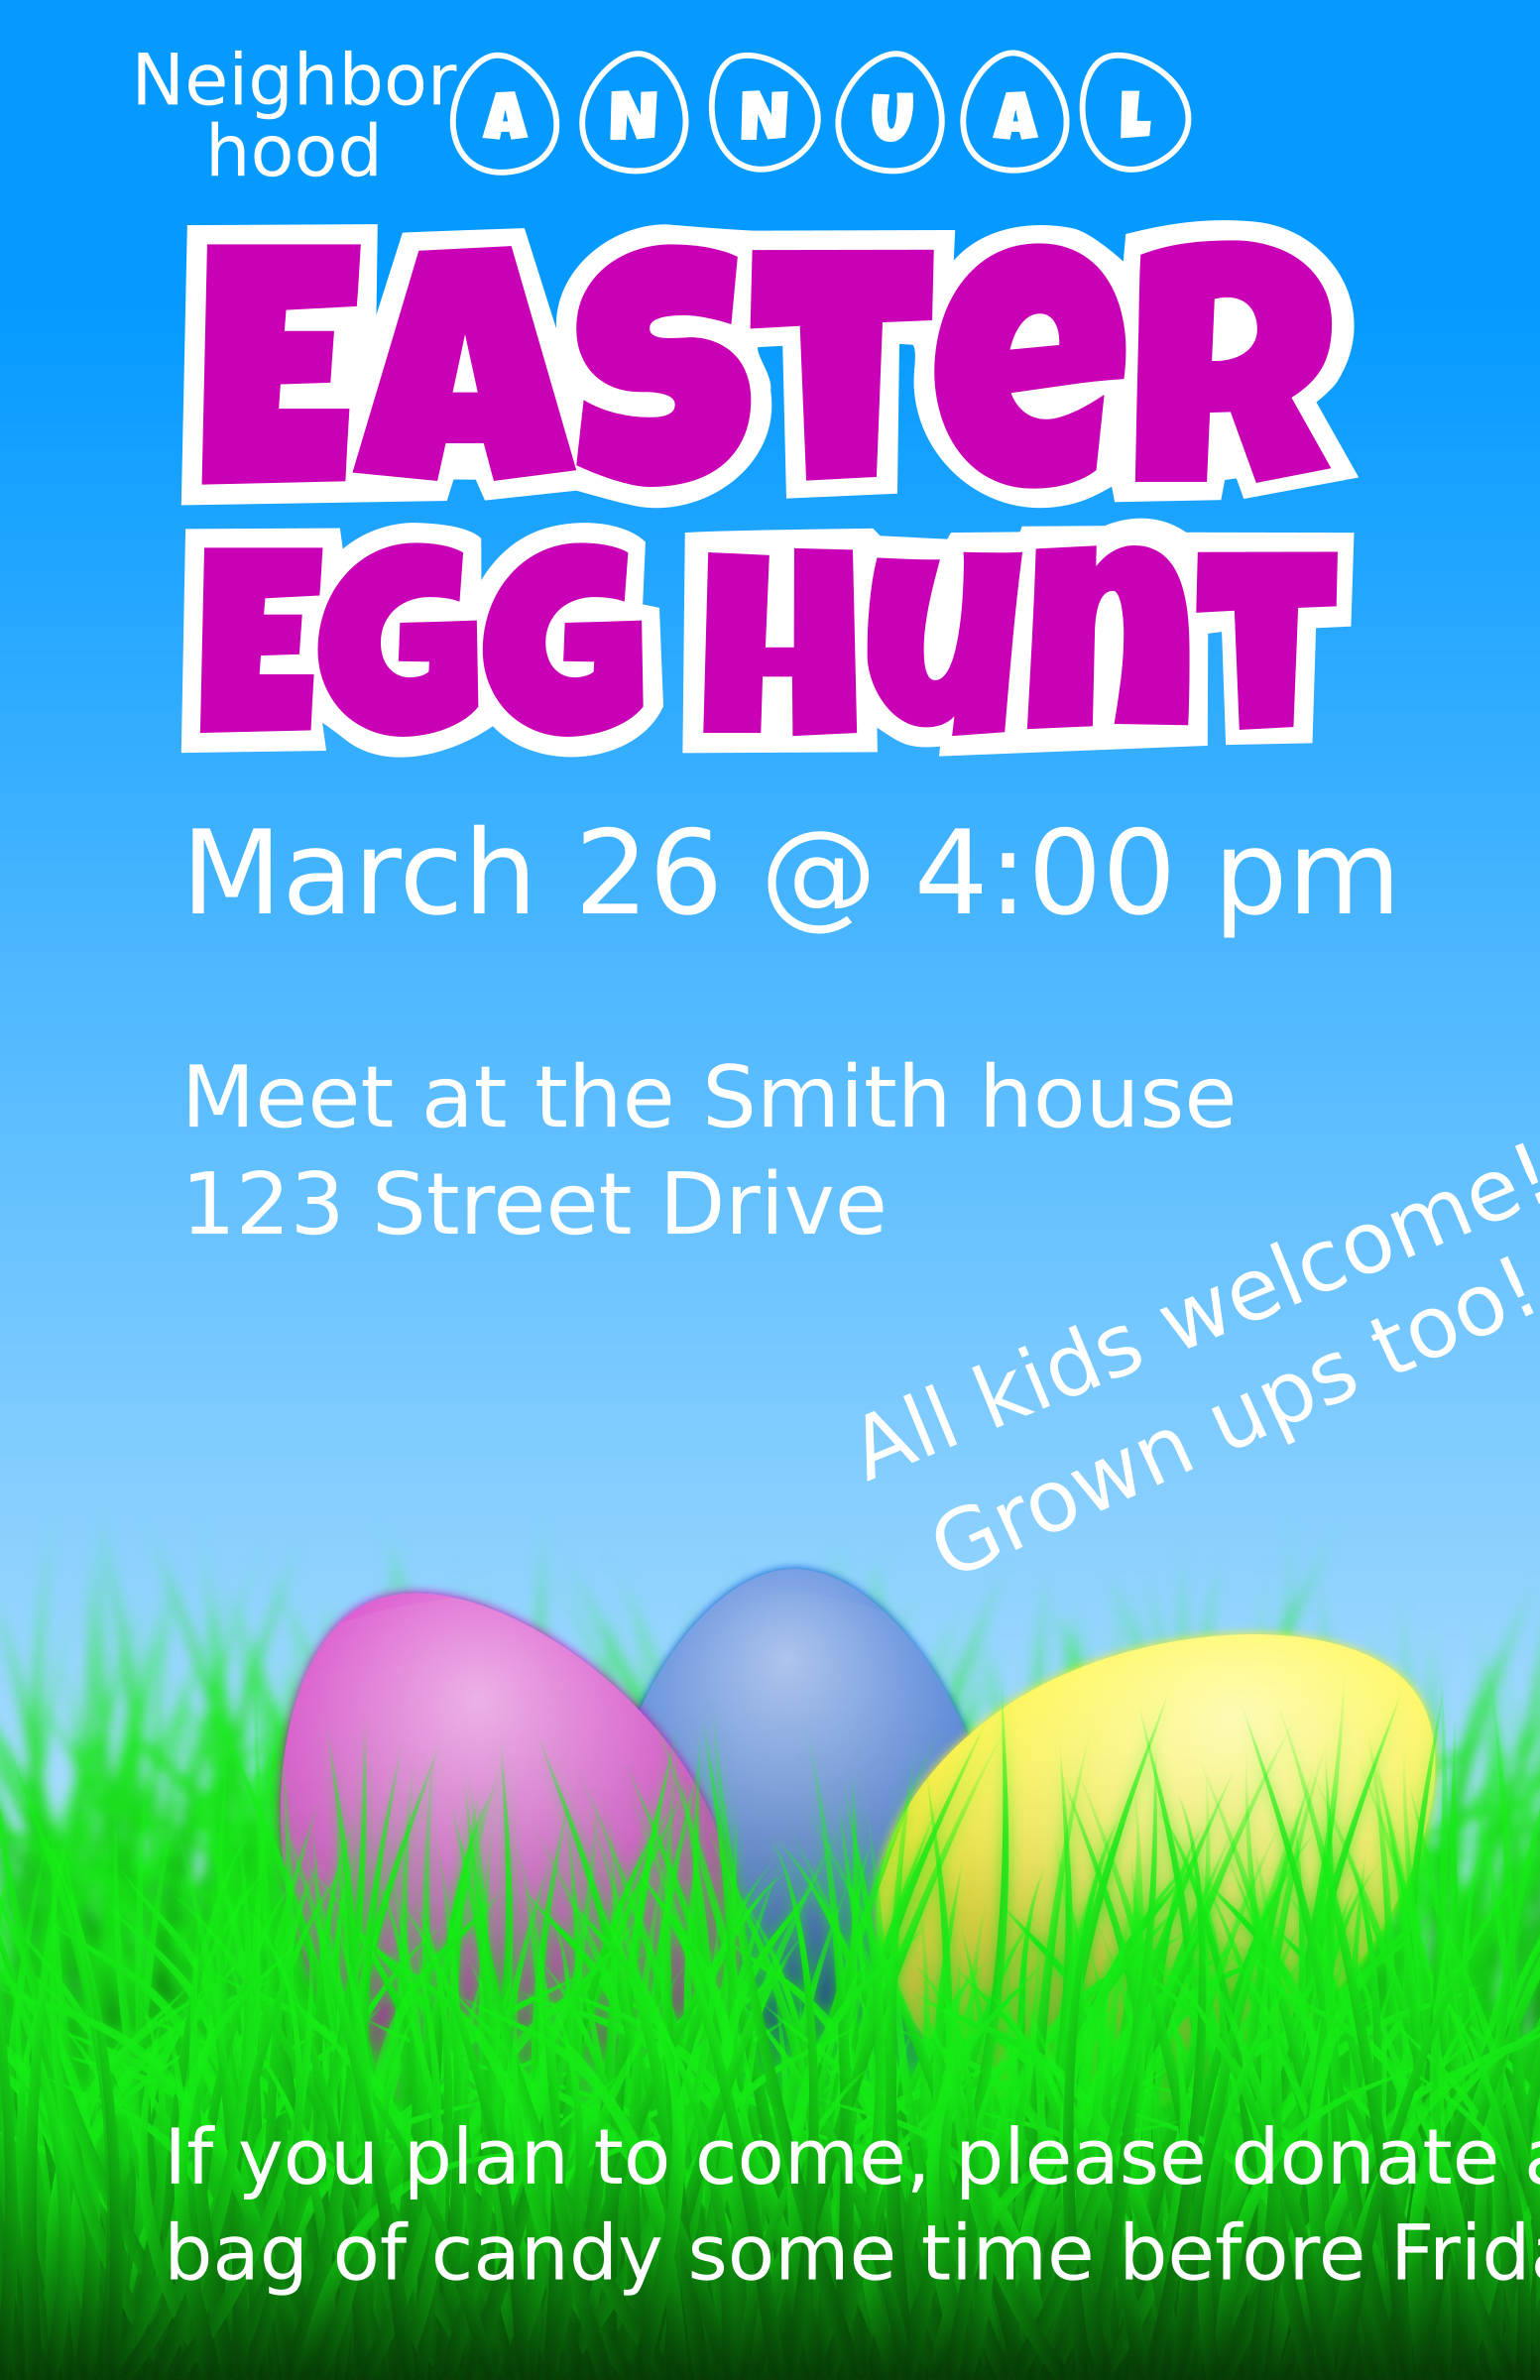 Easter Egg Hunt Flyer by jbaldus